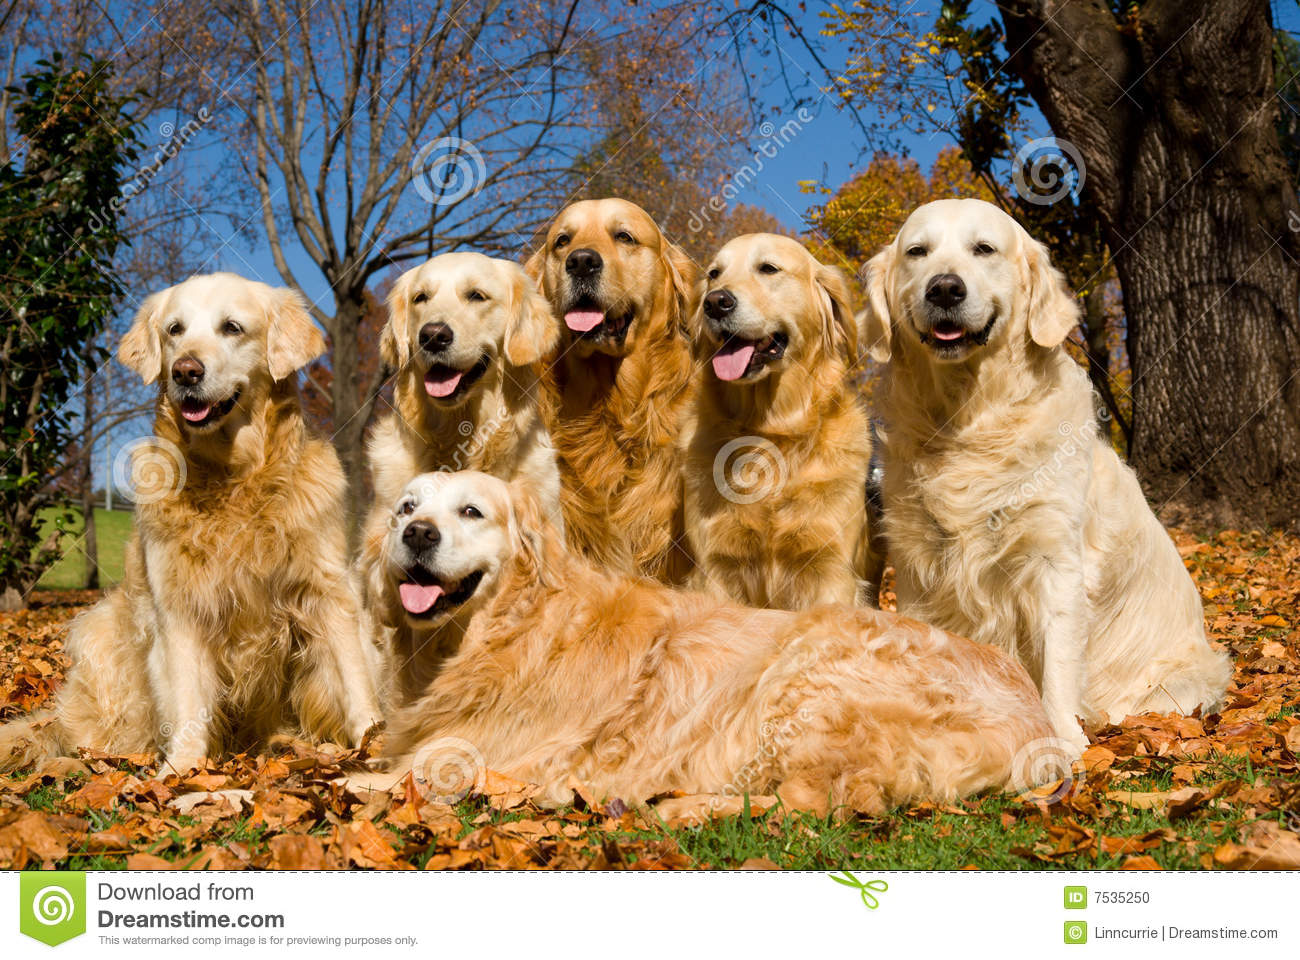 Dogs GR Golden Retrievers in field of Autumn leaves, tongues wagging.